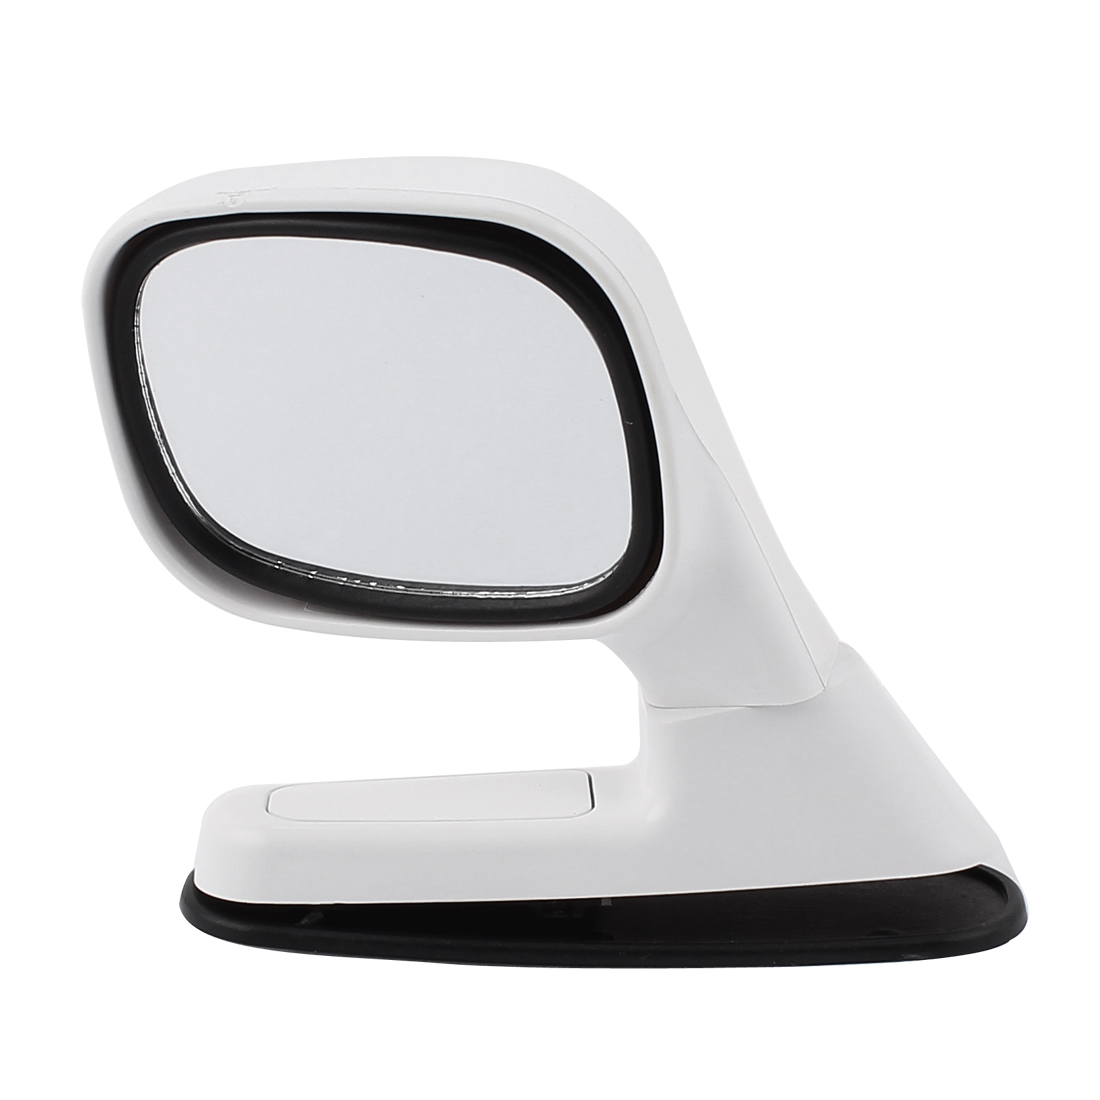 Auto Car Driver Sideview Assistant Rotatable Left Hand Rear View Mirror White